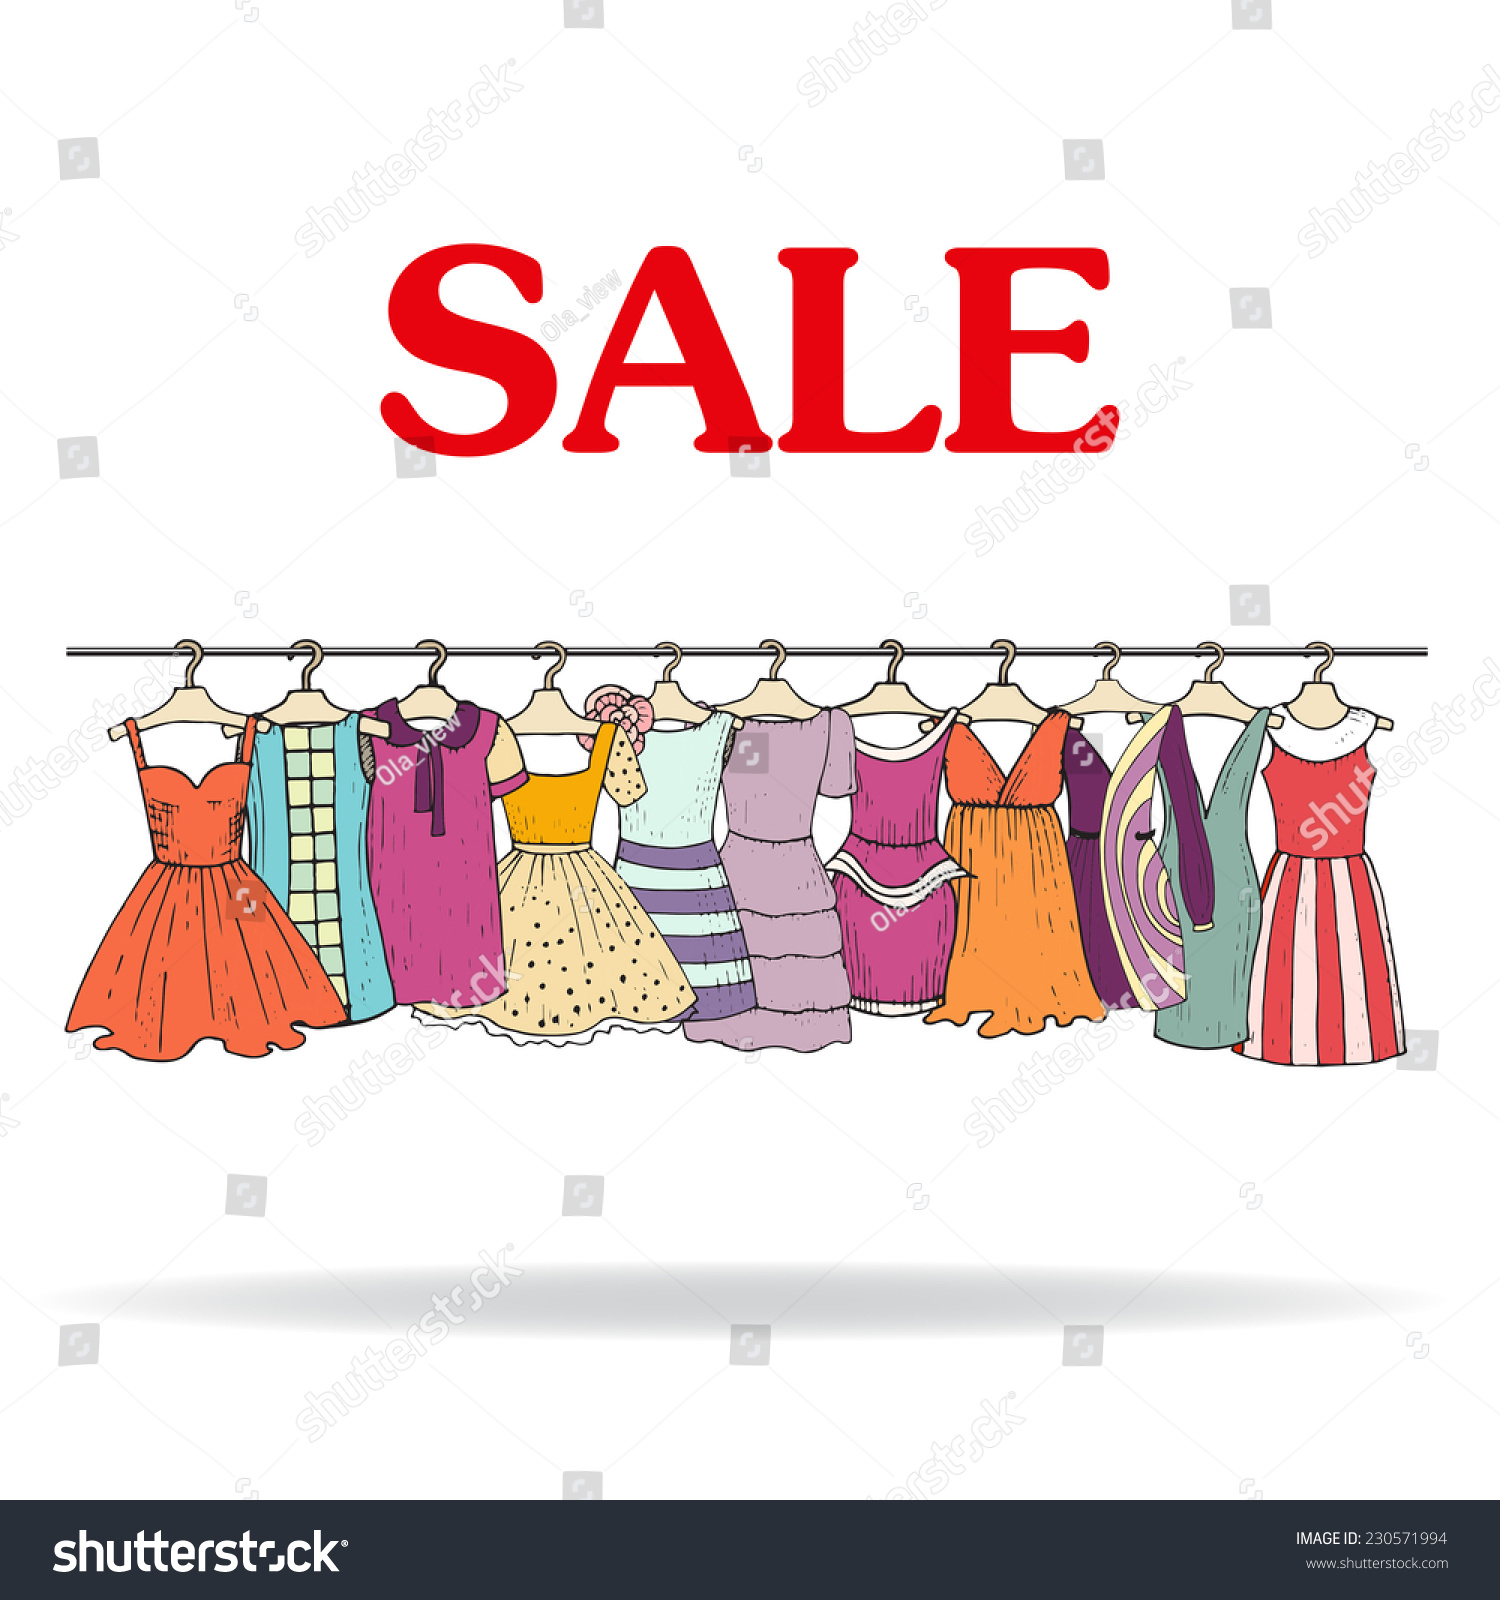 SALE CLOTHING Limited quantities. Wear-now clothing, now on sale — including women's dresses, tops, skirts and swimwear.